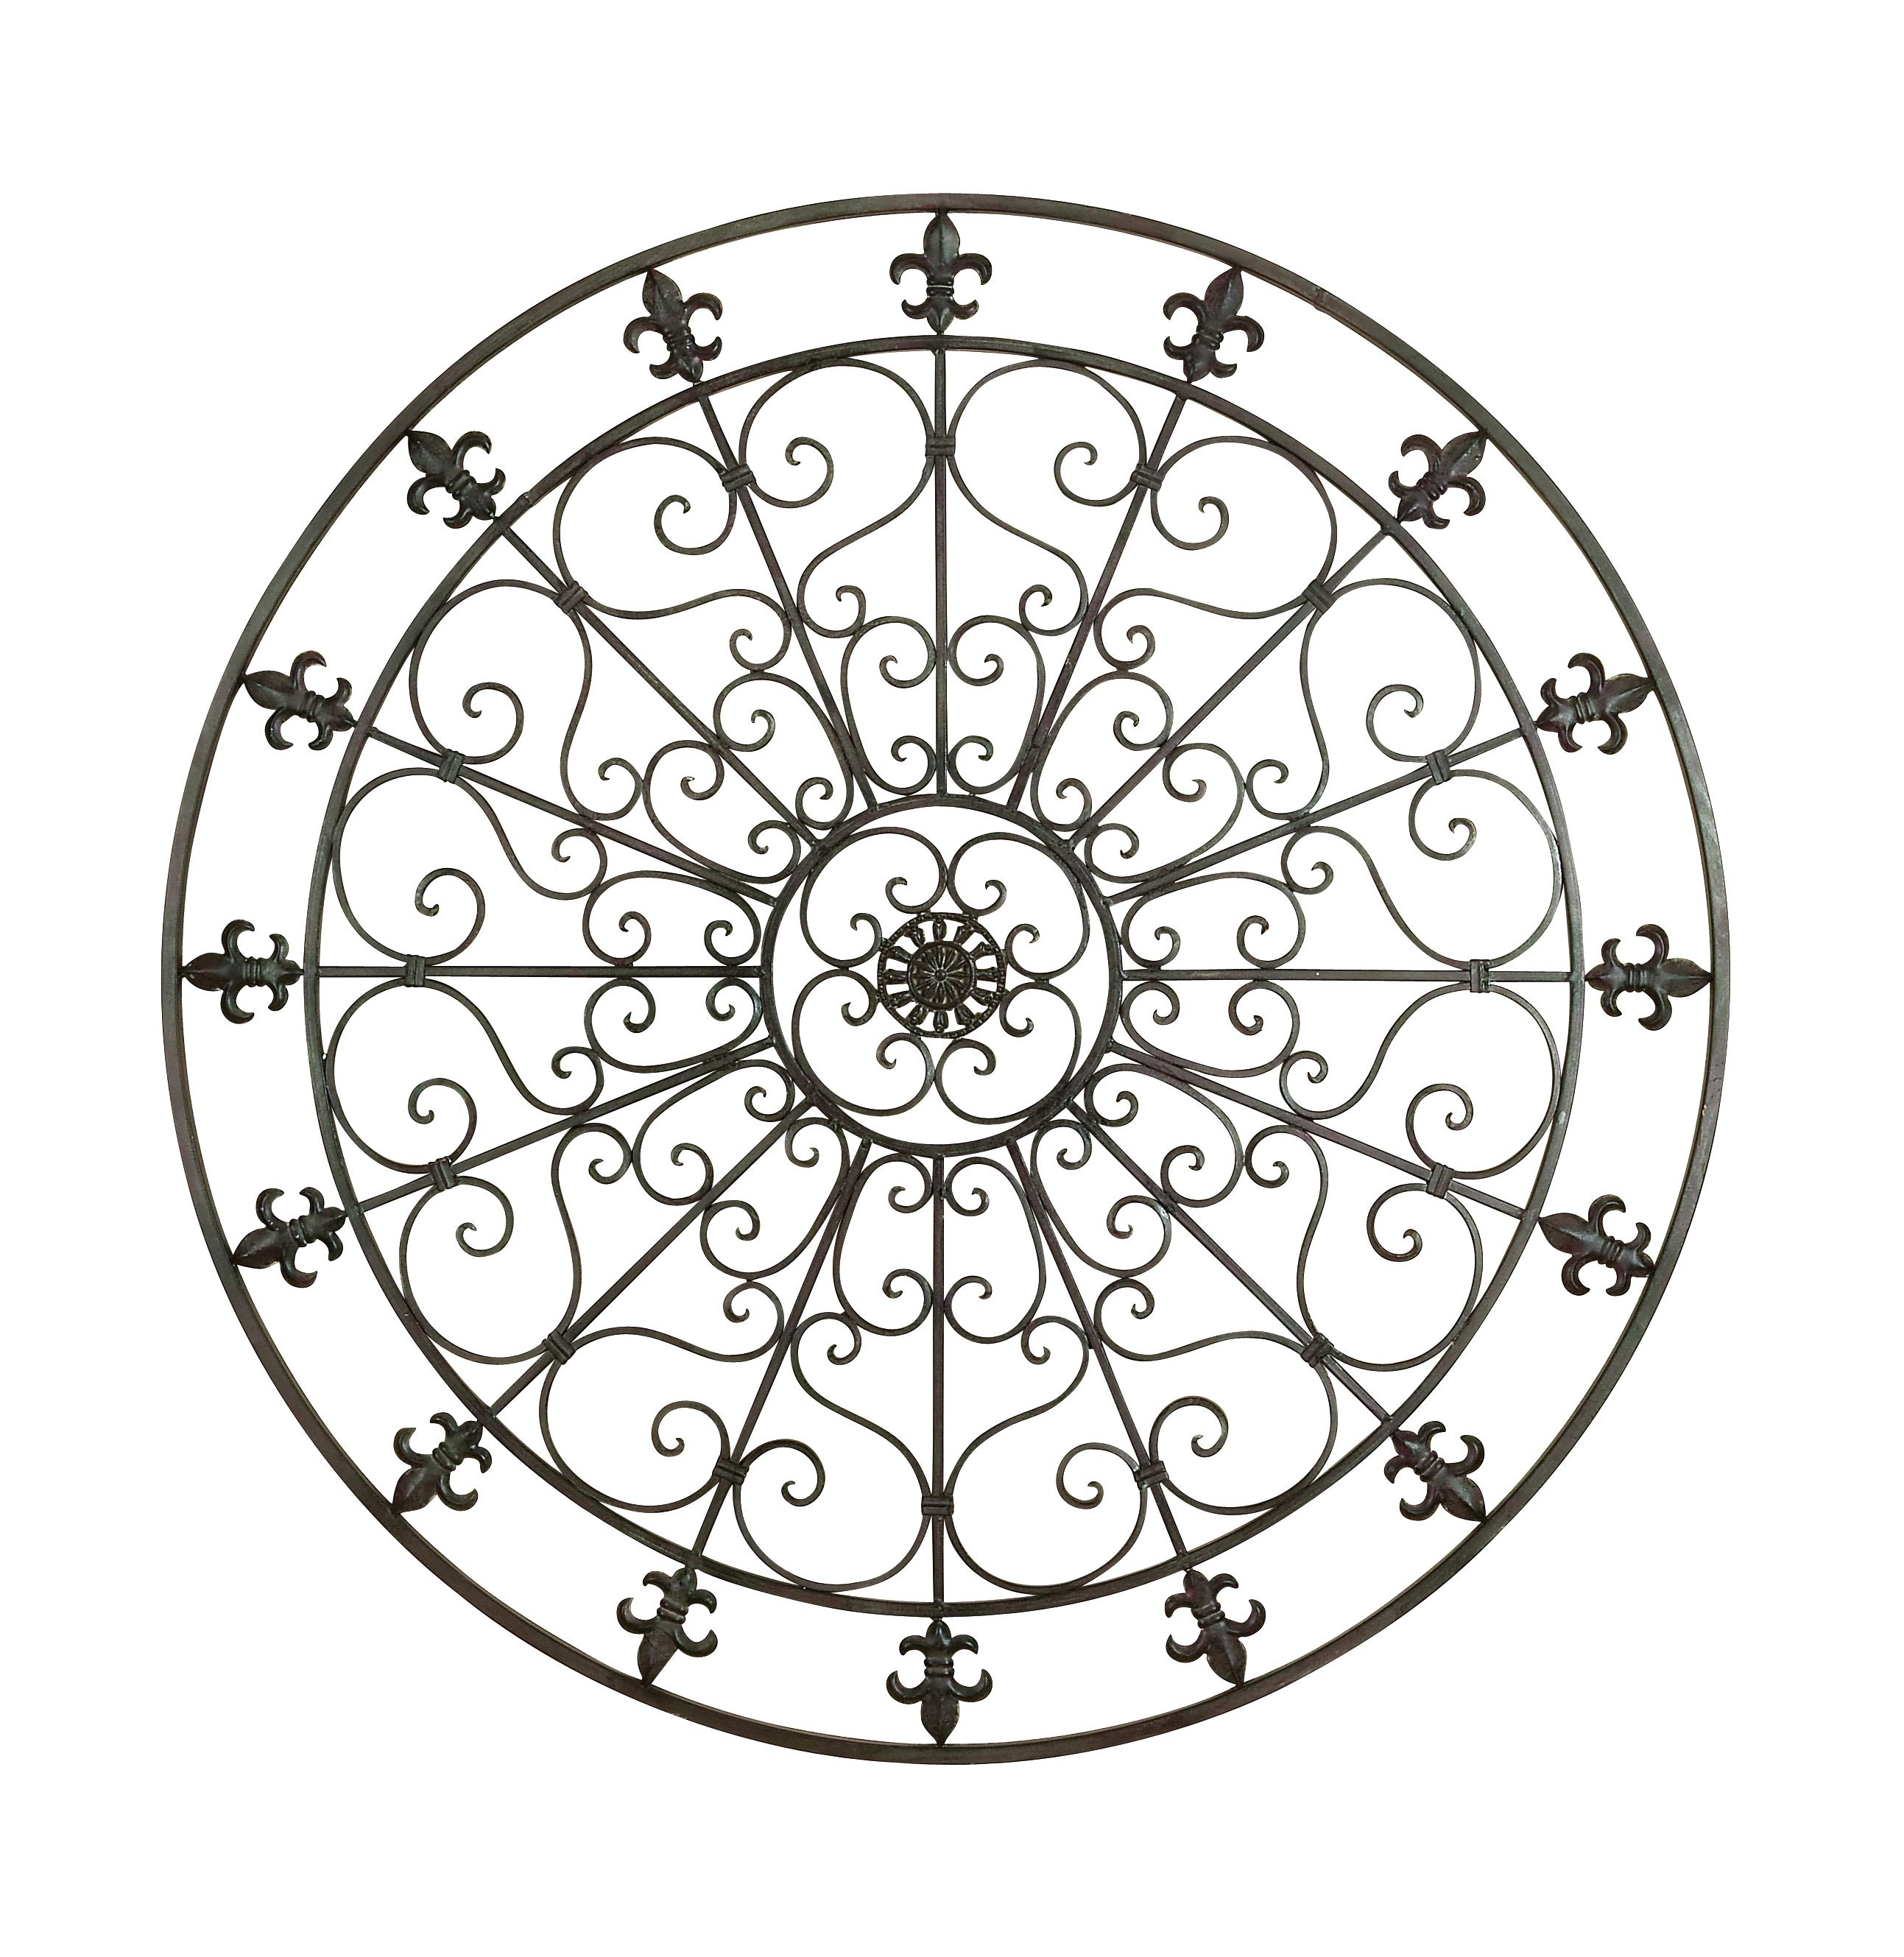 Decmode Rustic 42 Inch Fleur De Lis And Scrollwork Round Metal Wall Decor With 2 Piece Metal Wall Decor Sets By Fleur De Lis Living (View 23 of 30)